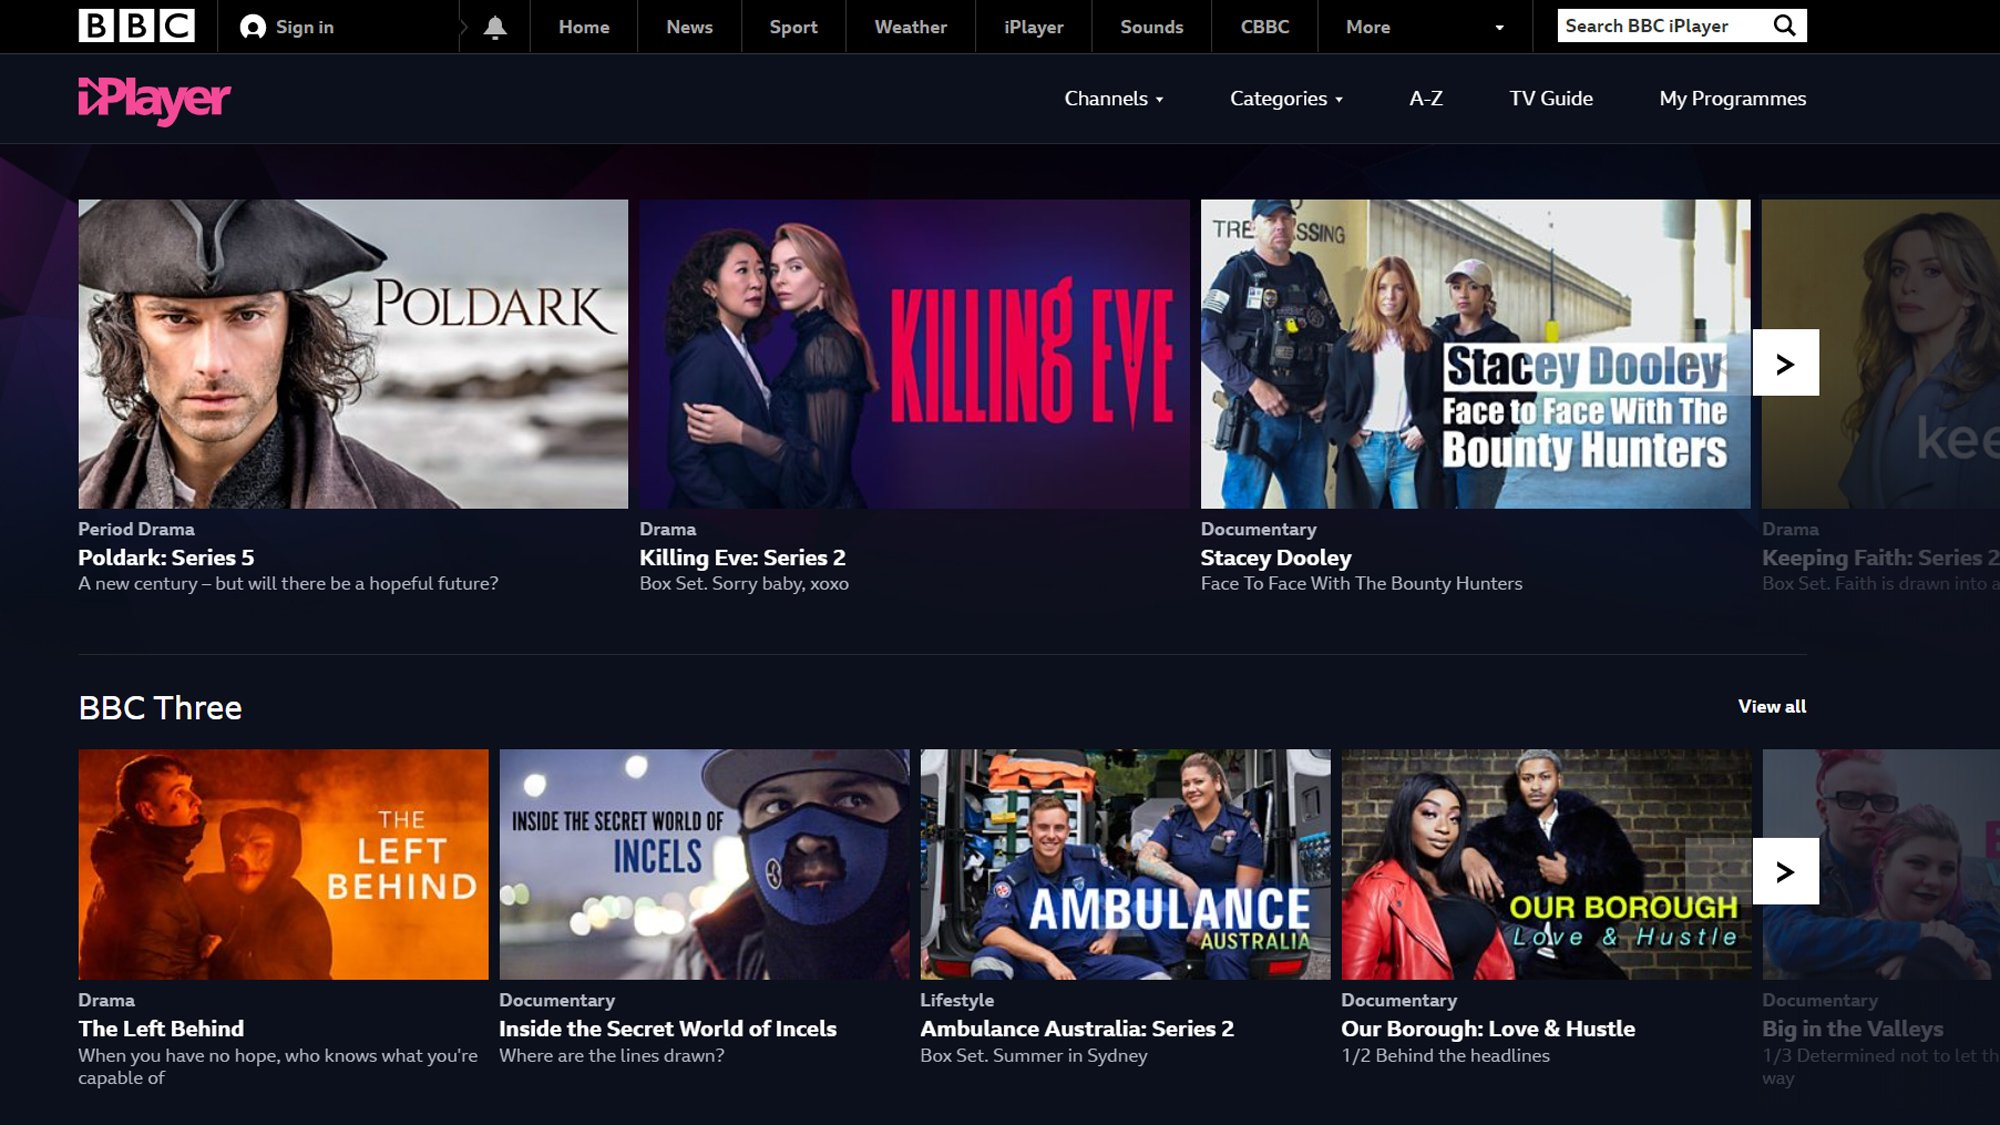 How to watch UK TV abroad: Find out how to watch BBC iPlayer and Sky